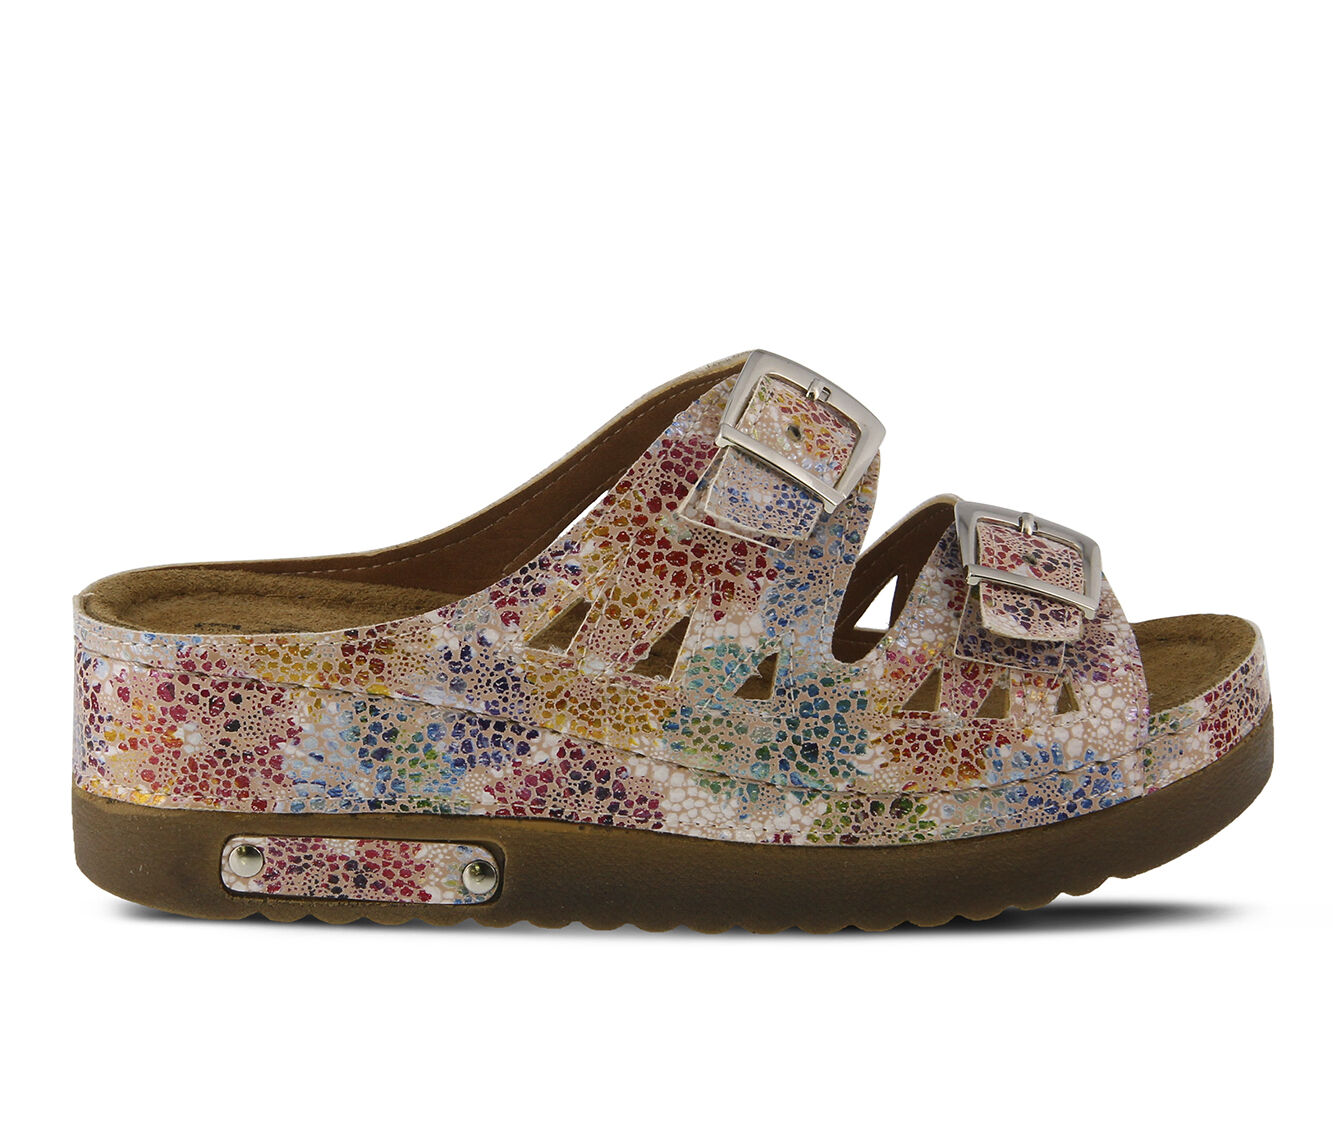 cheapest new Women's FLEXUS Delsie Flatform Sandals Pink Multi